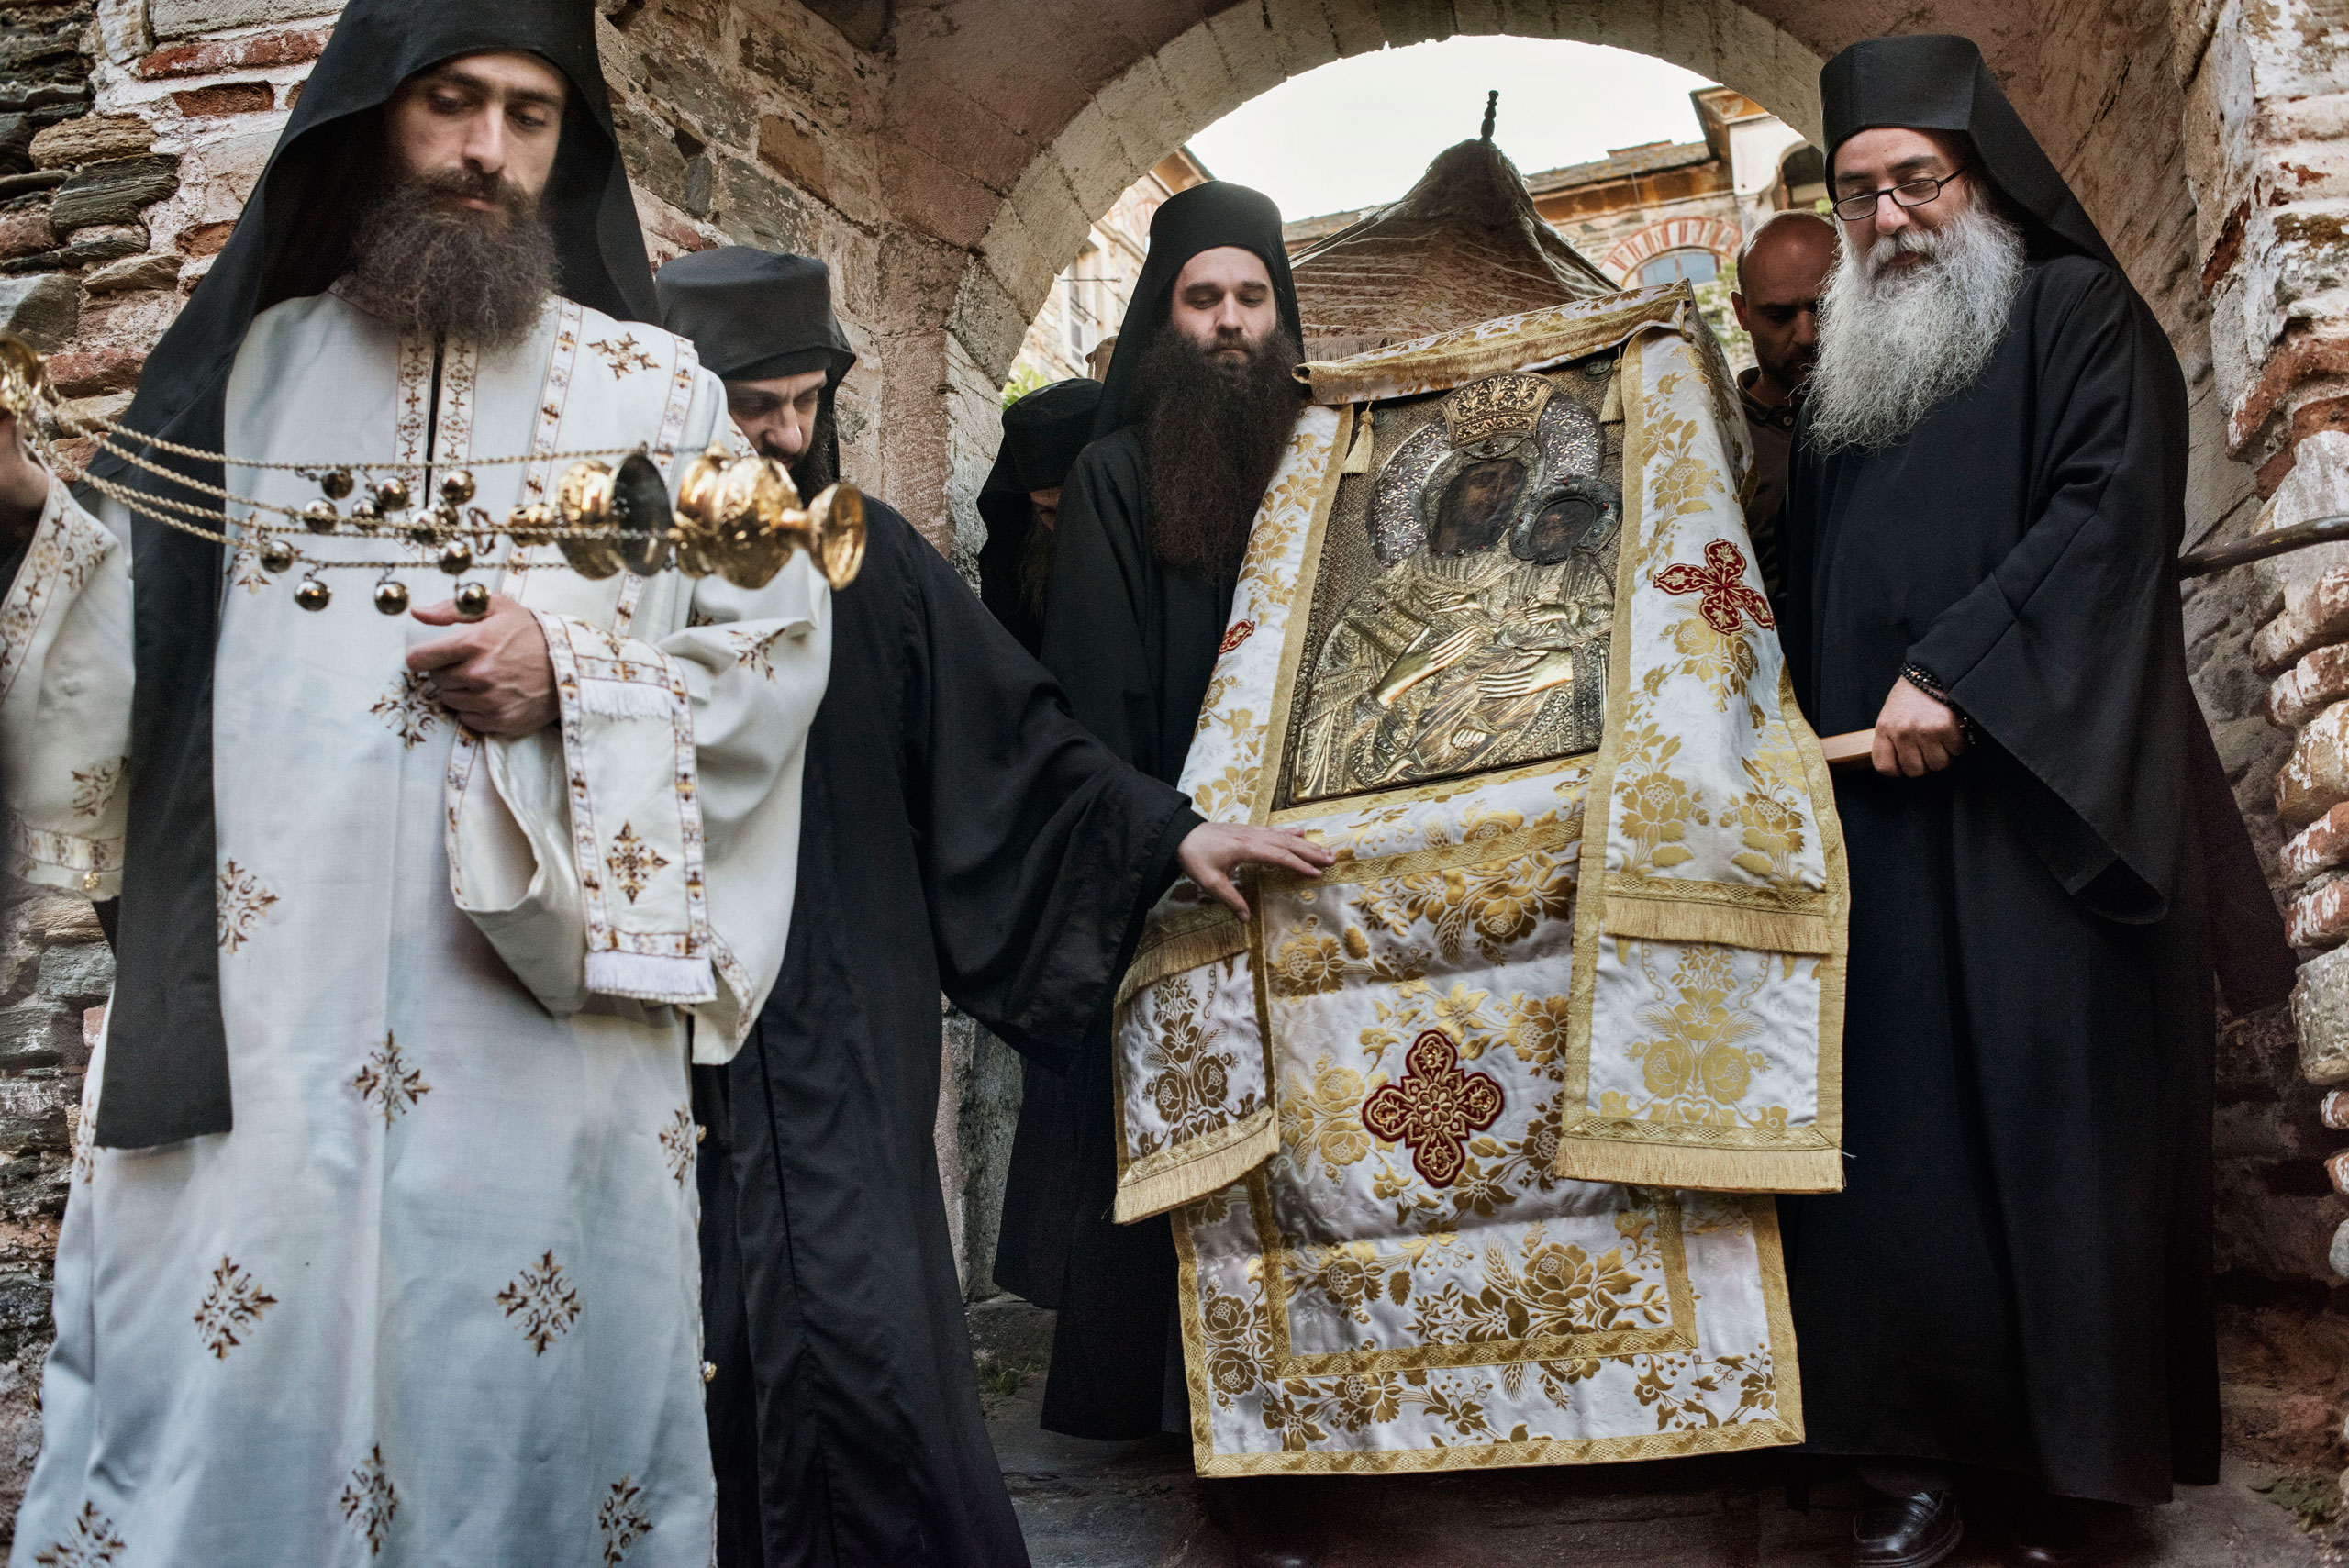 Orthodox Christian monks carry an icon of the Virgin and Child inside the Greek Monastery of Vatopedi, one of the oldest and largest of the 20 monasteries on Mount Athos, a self-governing community of Orthodox Christian monks in northern Greece, May 29, 2016.